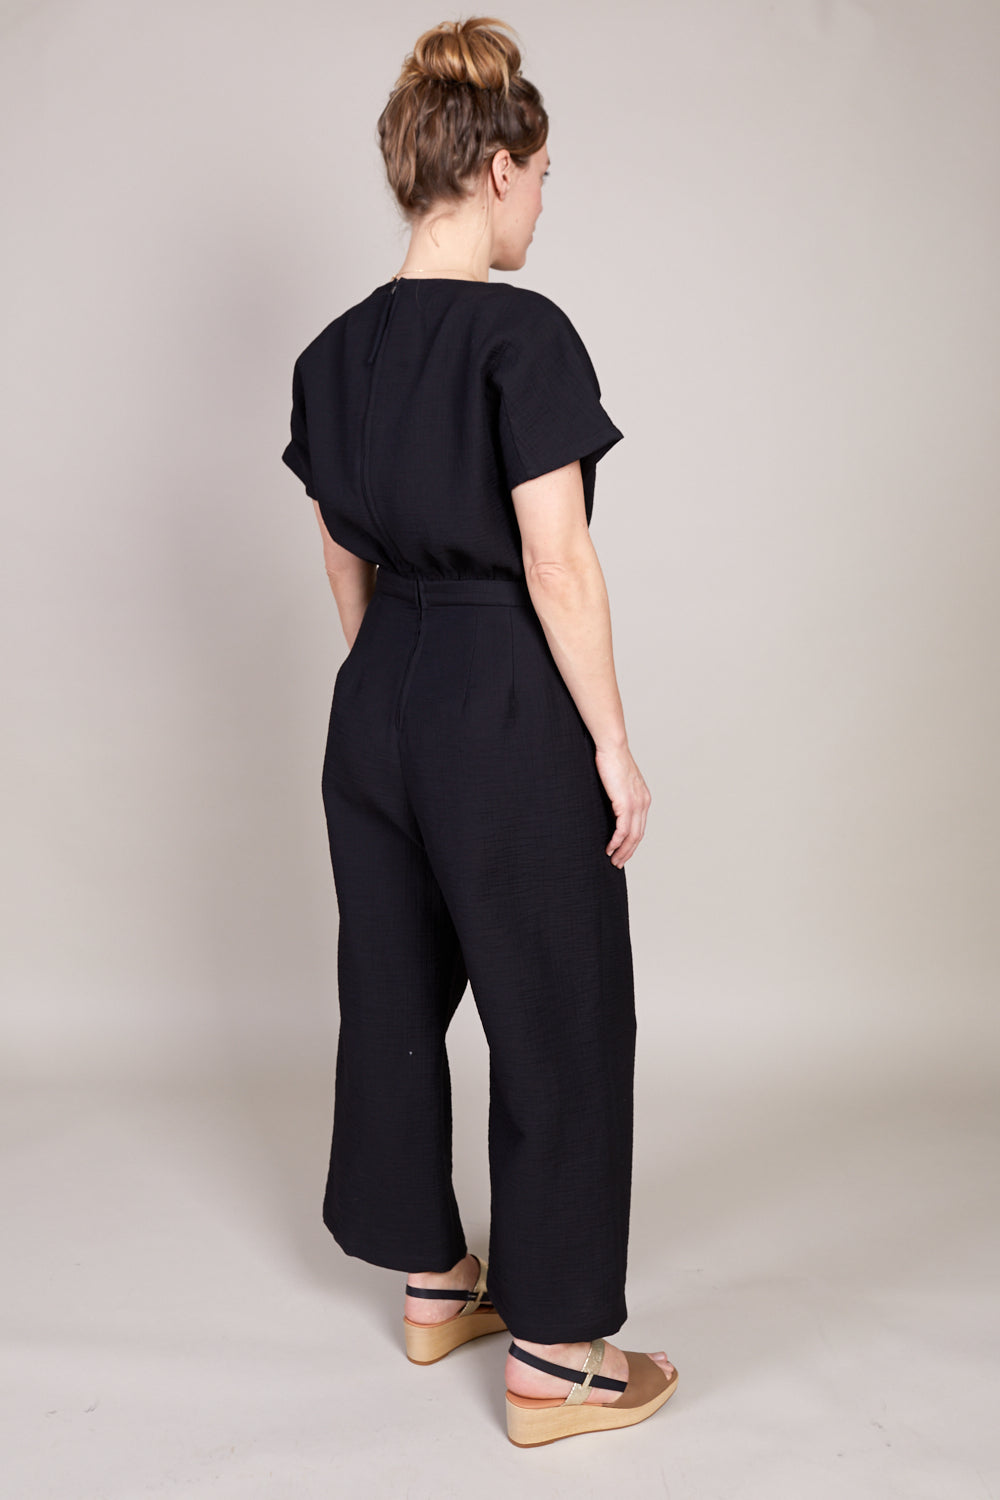 Rachel Comey Benedict Jumpsuit in Black - Vert & Vogue